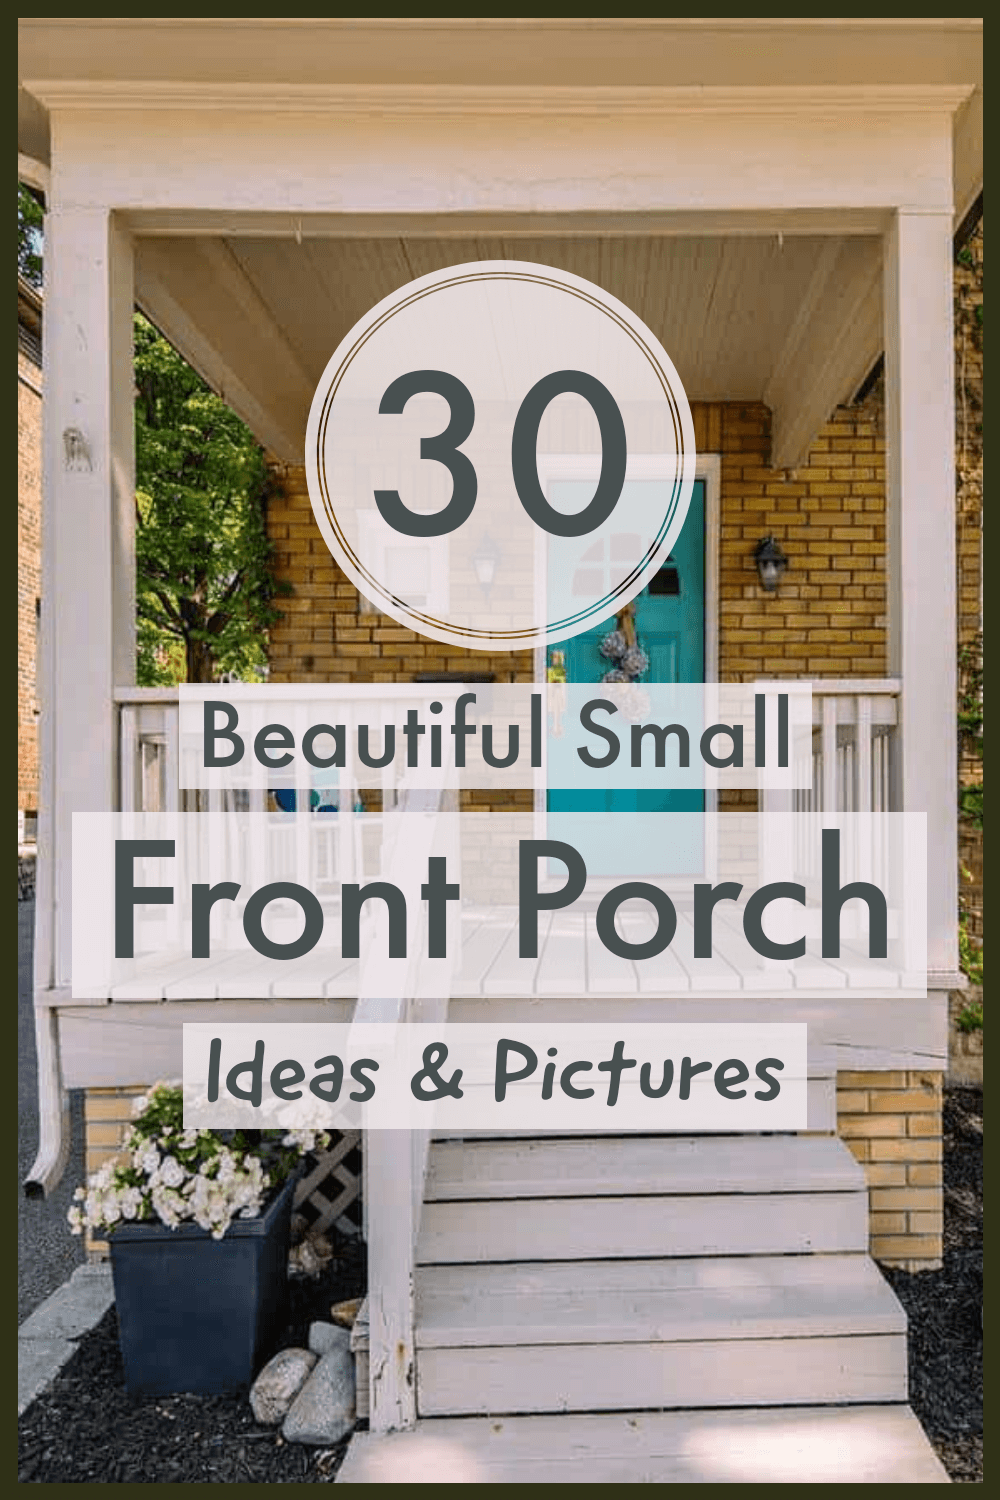 32 Front Porch Ideas For Small Houses [Pictures]